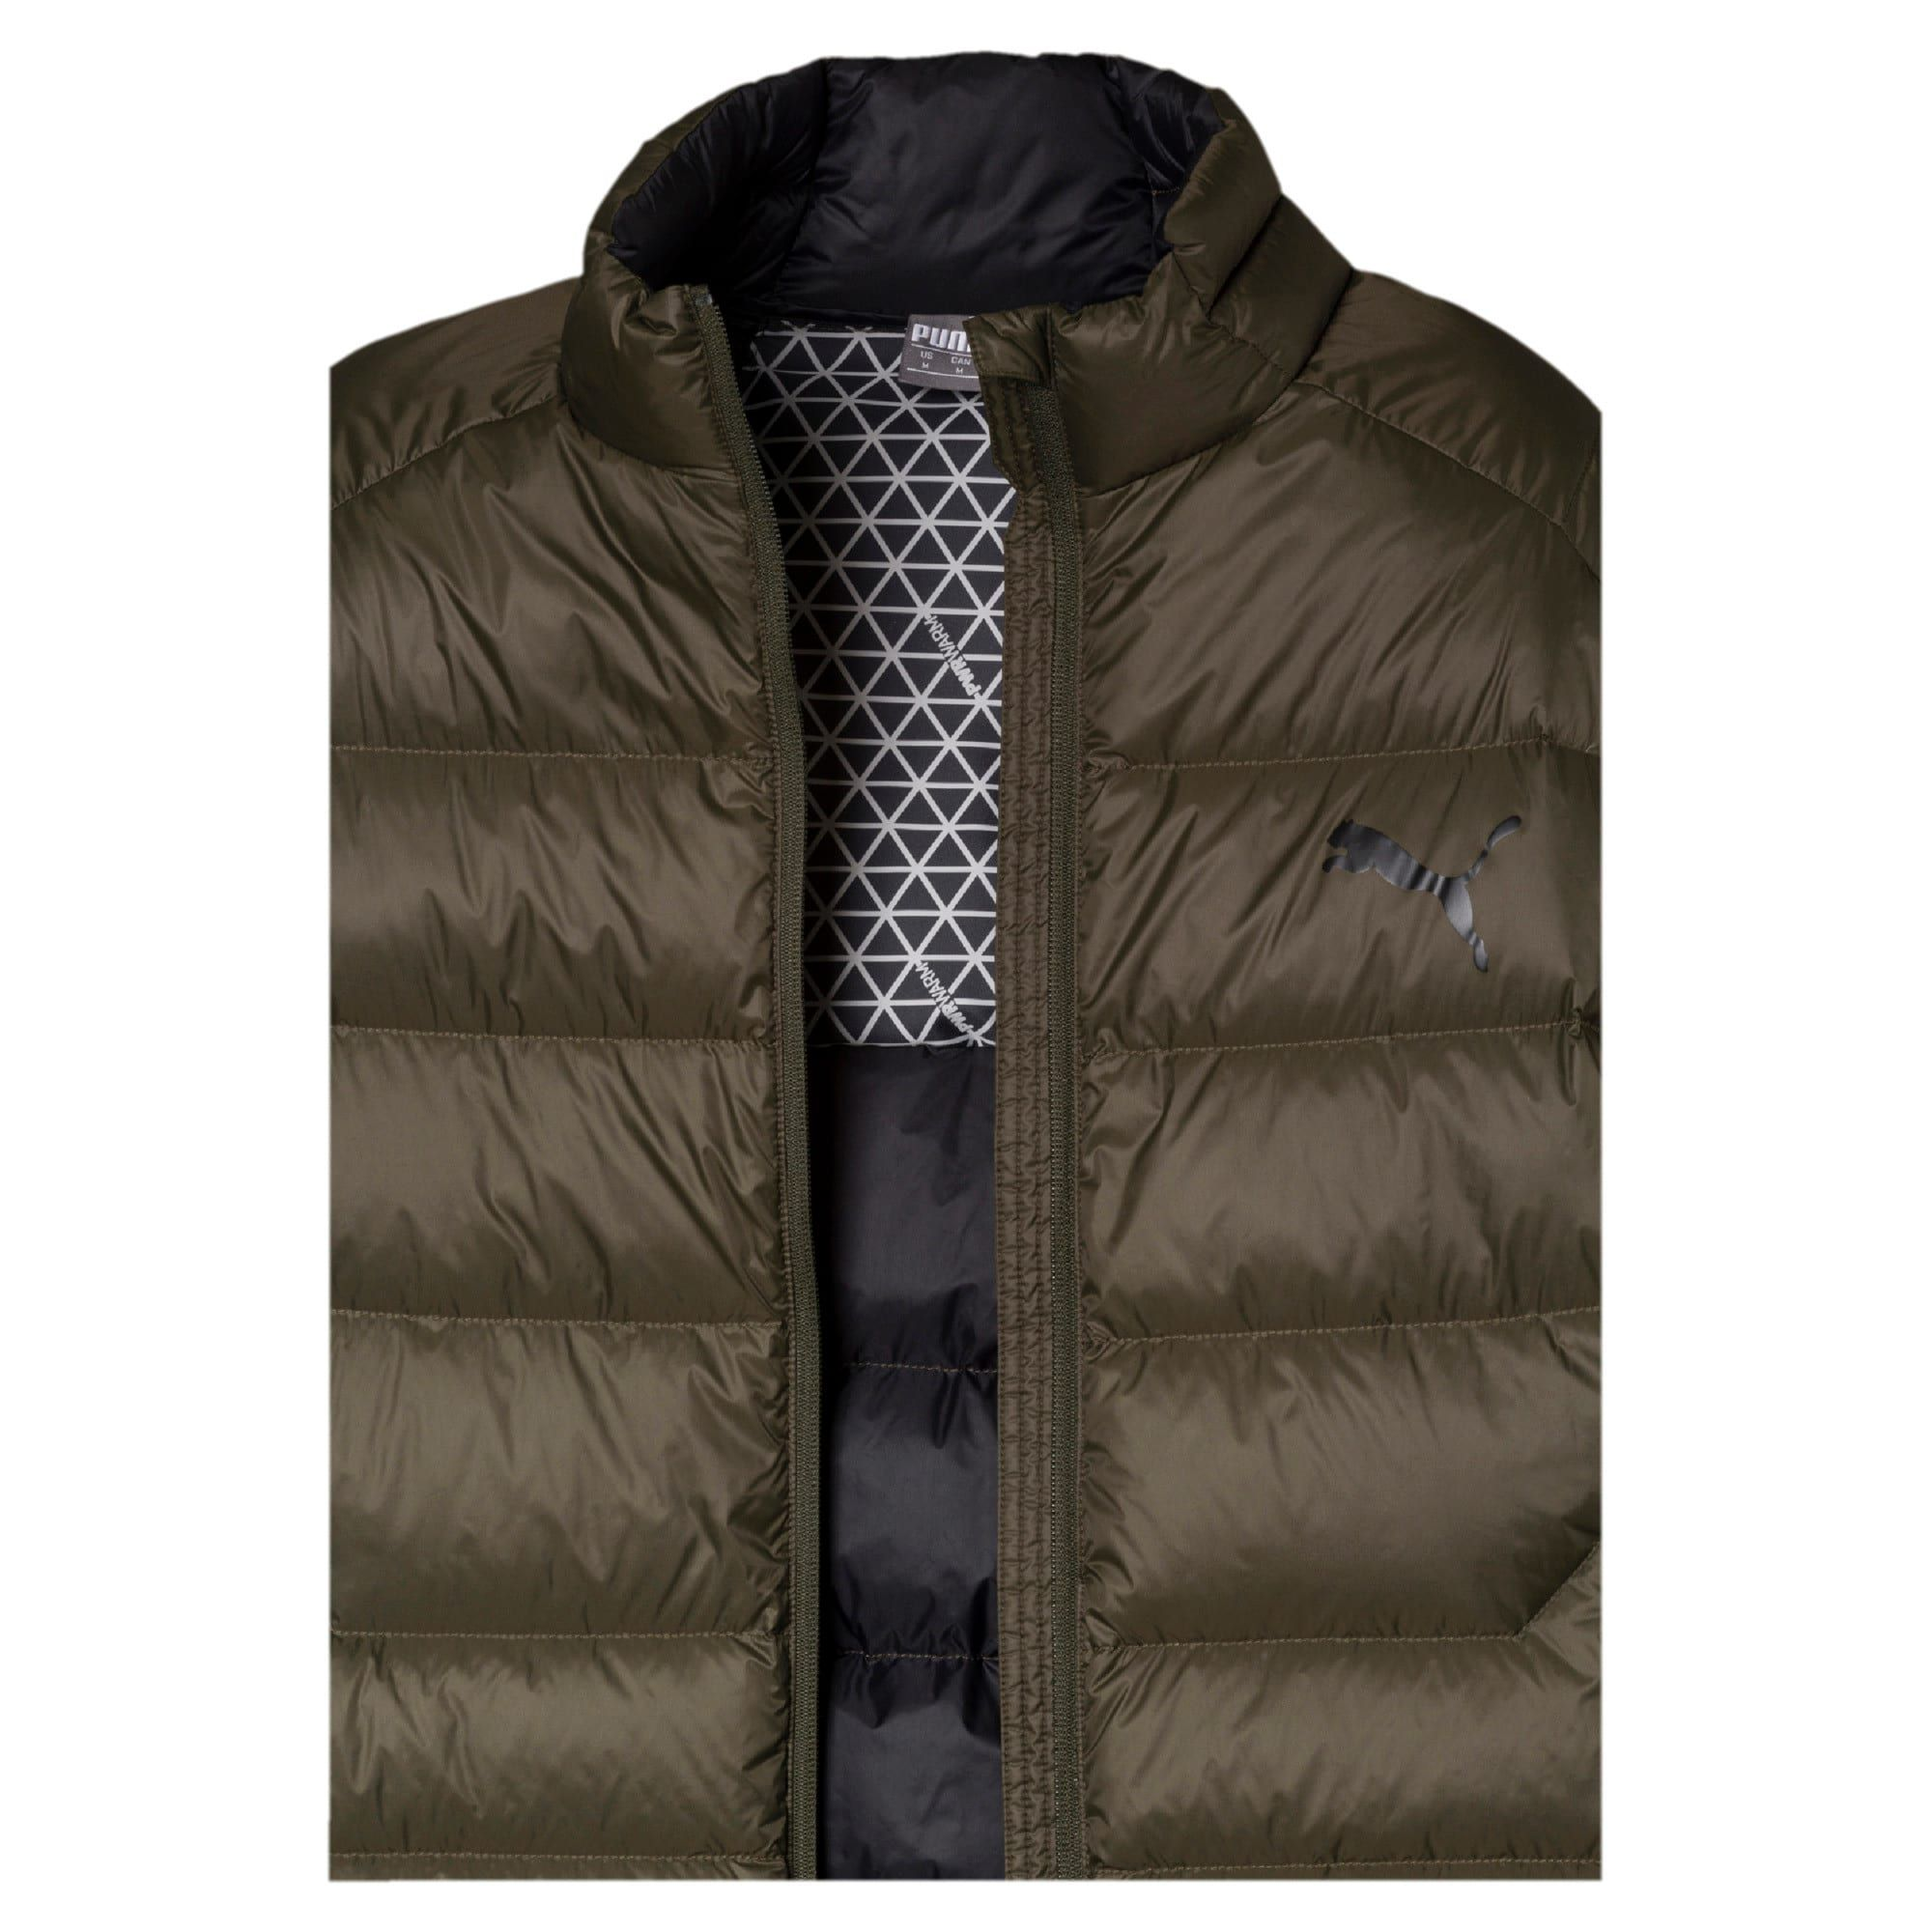 PUMA PWRWarm packLite 600 Down Men's Jacket in Forest Night